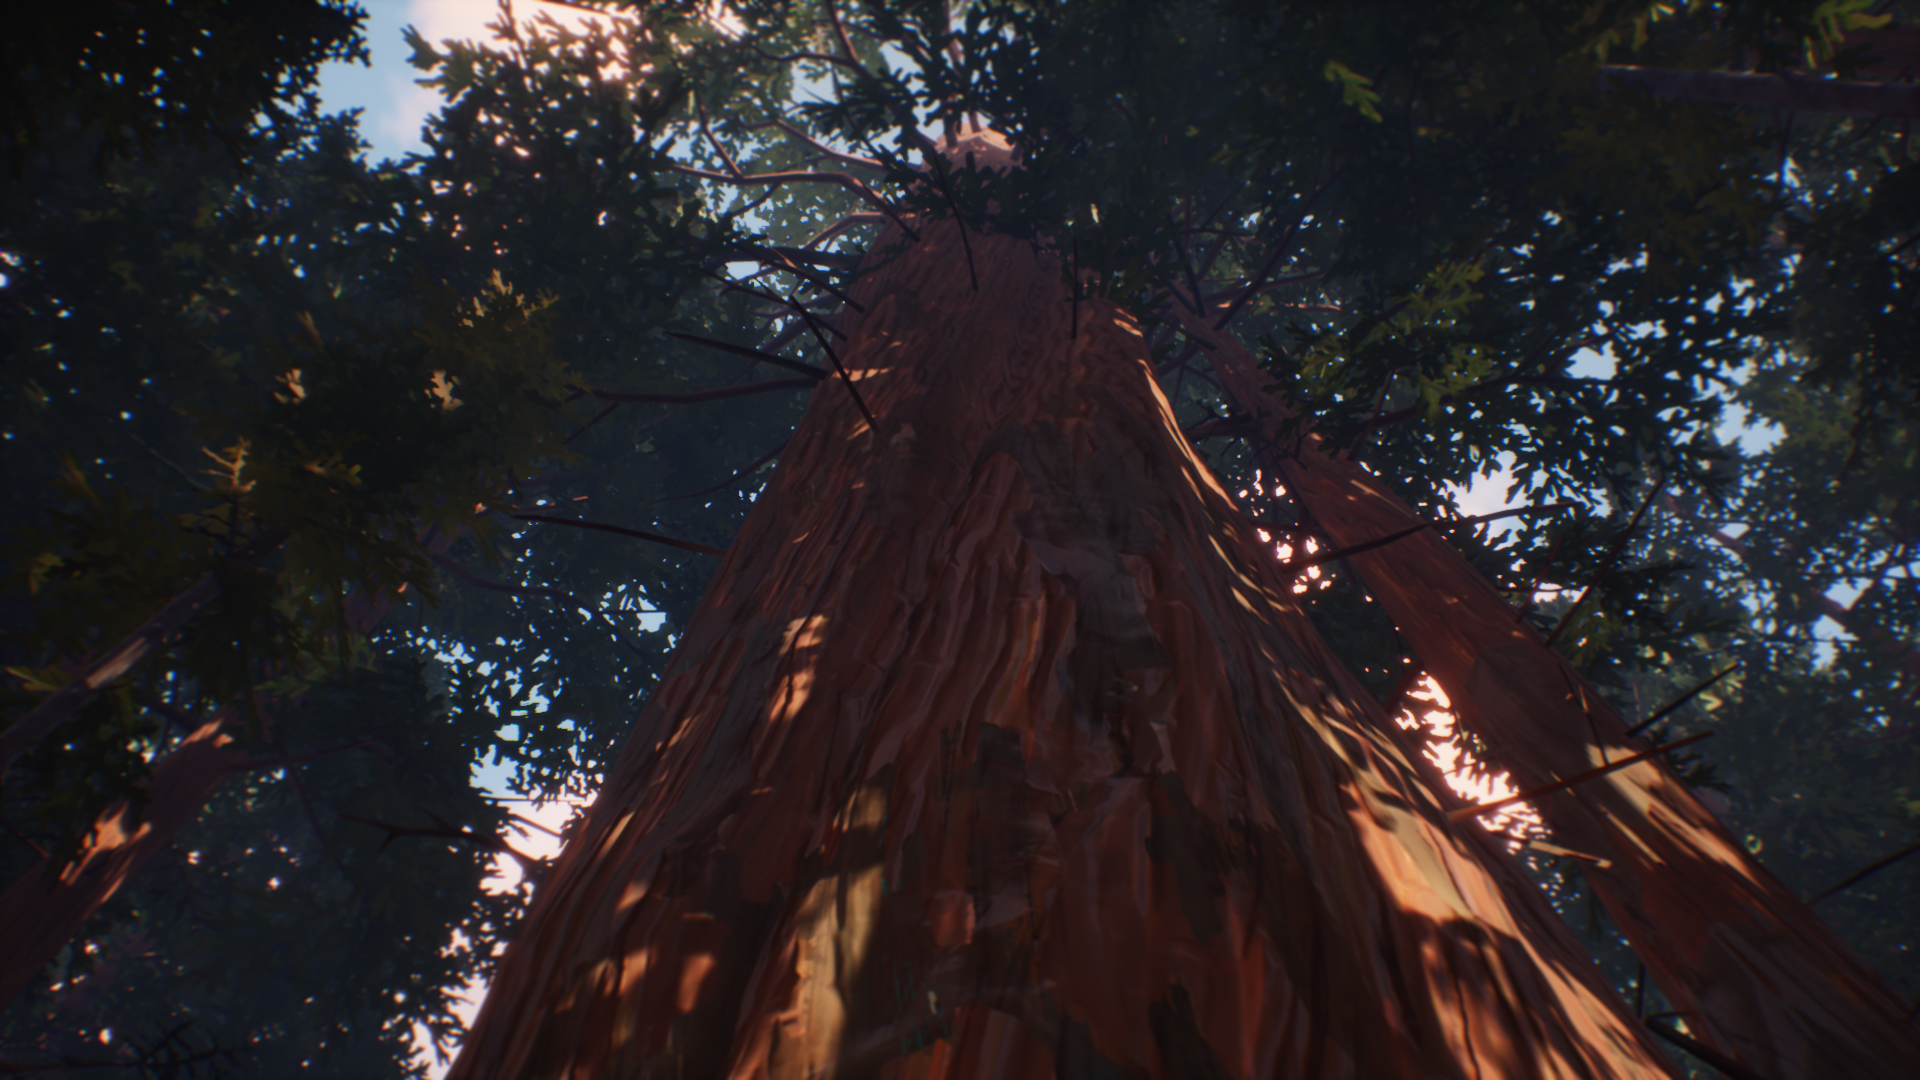 Humboldt County - Redwood Tree - Morning